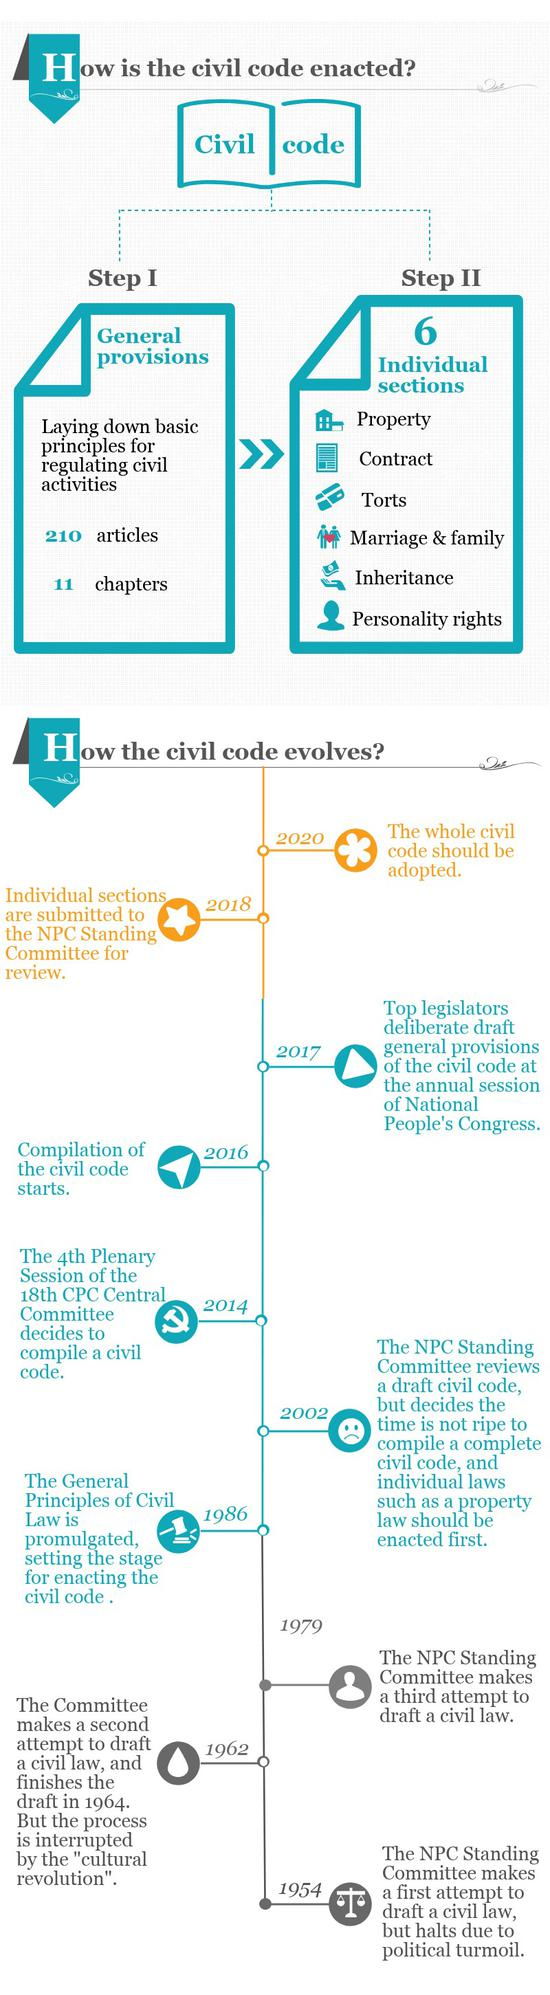 How the civil code evolves?